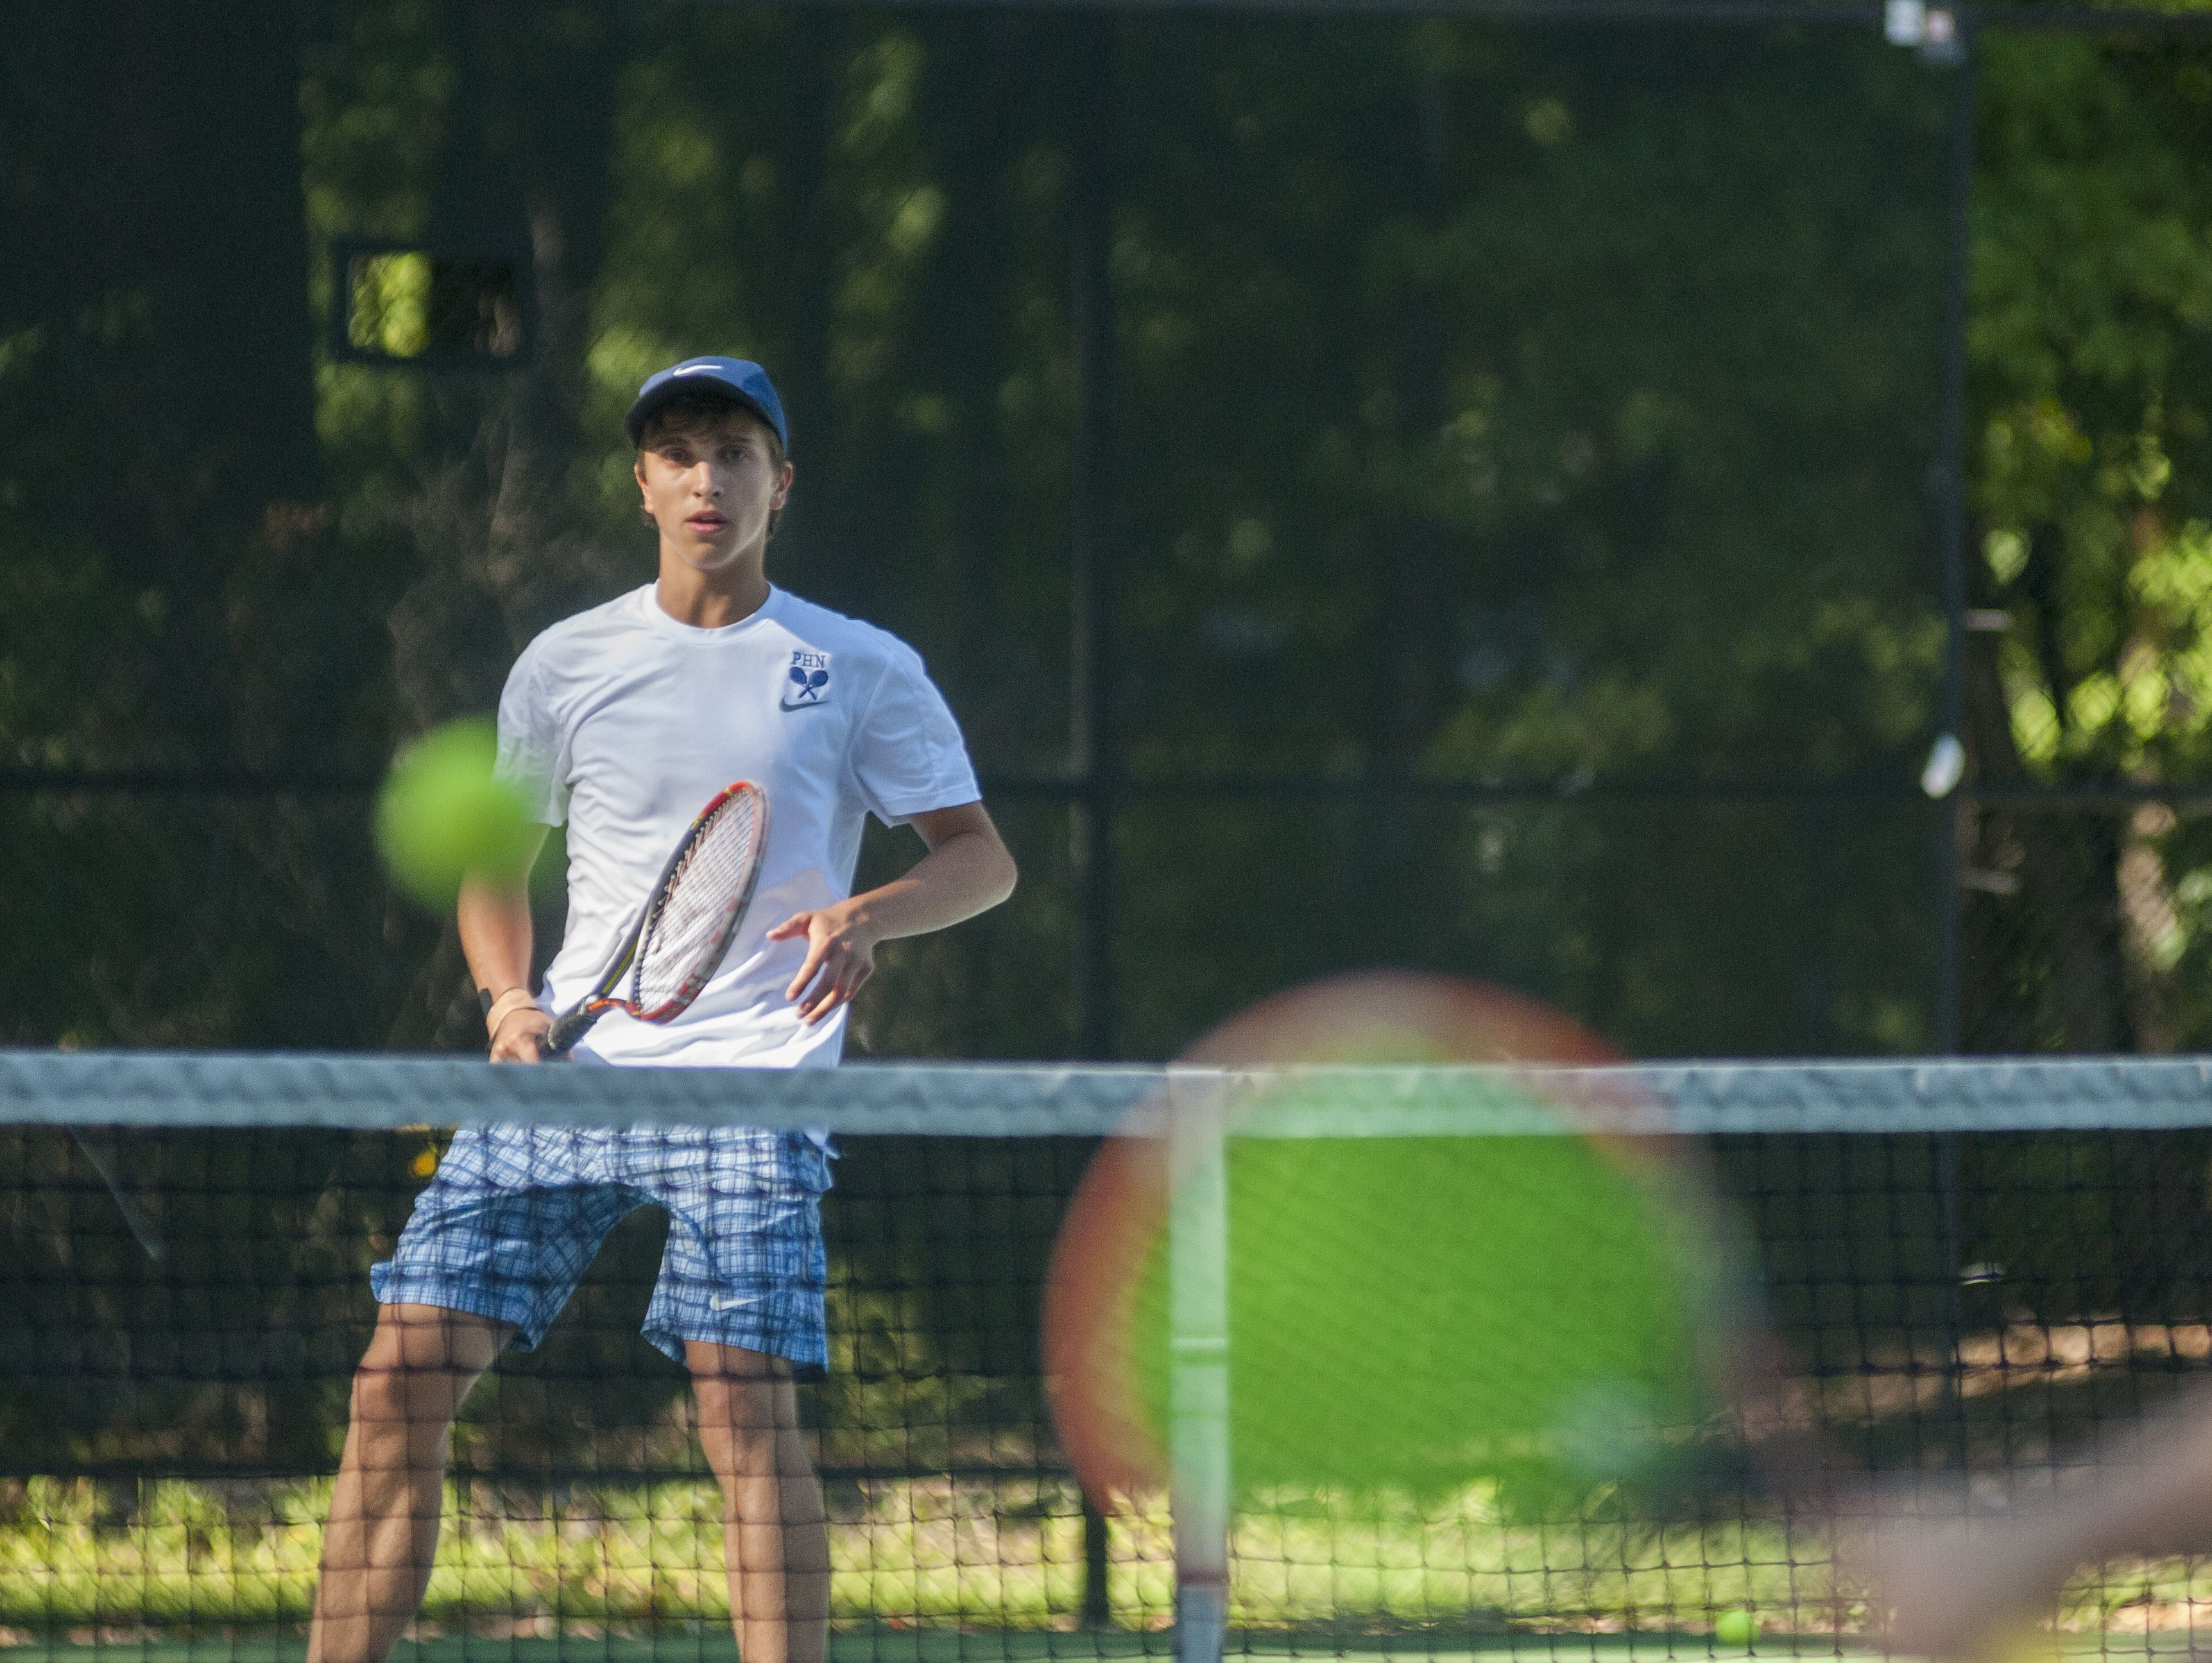 Huskies' John Betrus hits the ball over the net Monday, Sept. 12, during boys tennis action at Sanborn Park tennis courts.